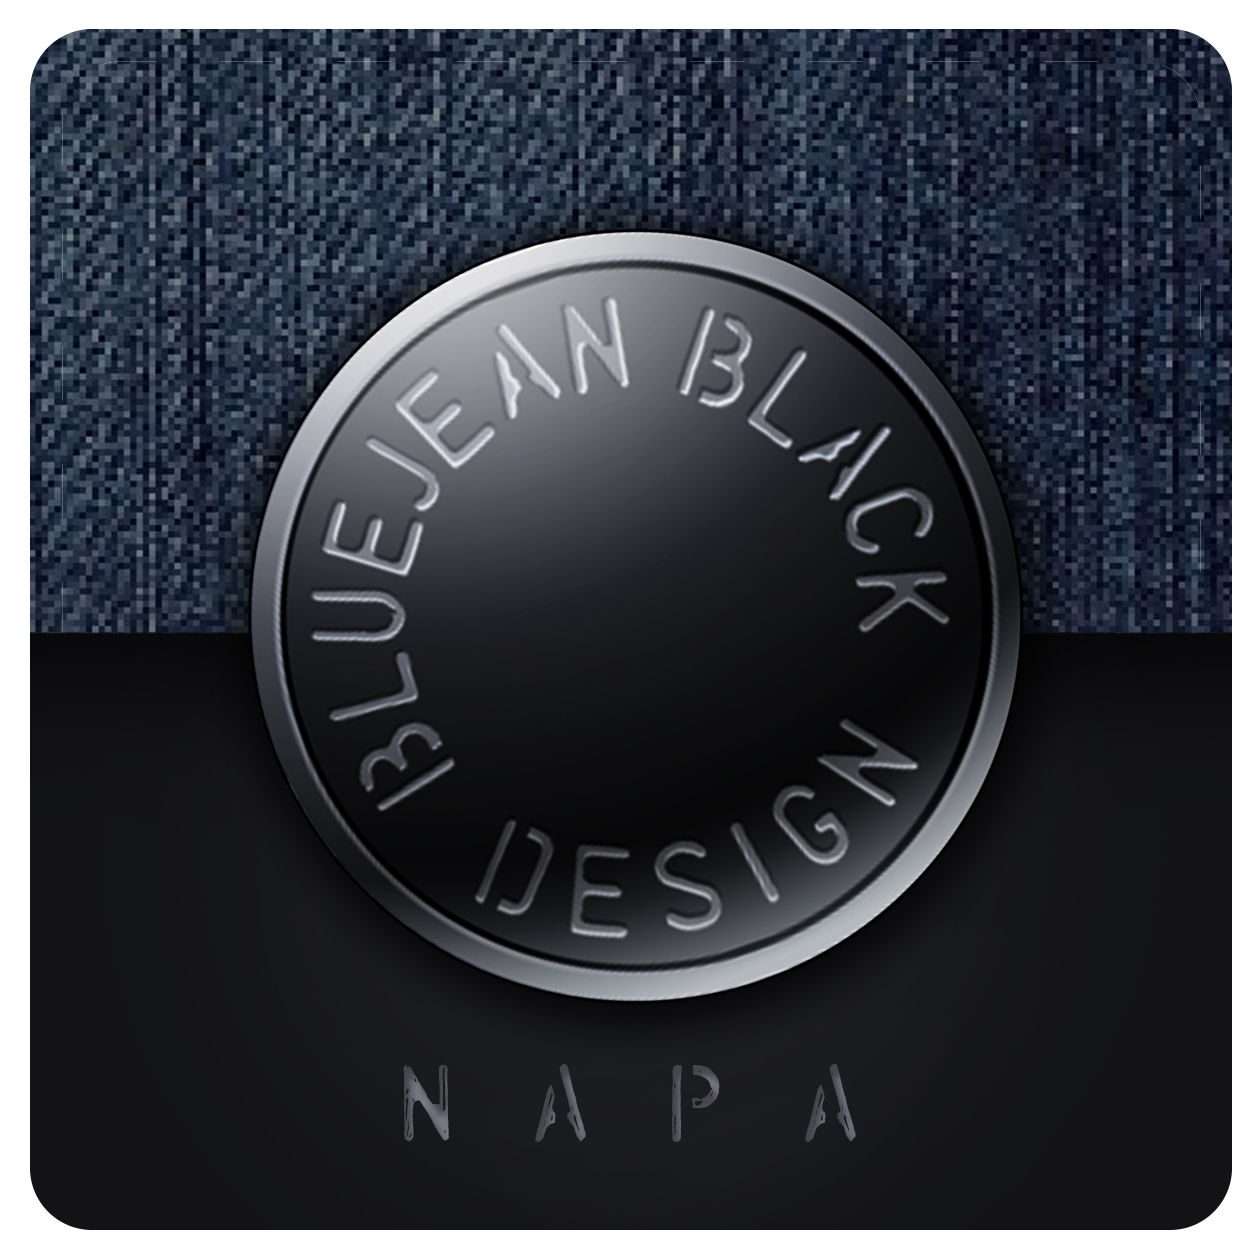 Blue Jean Black Design